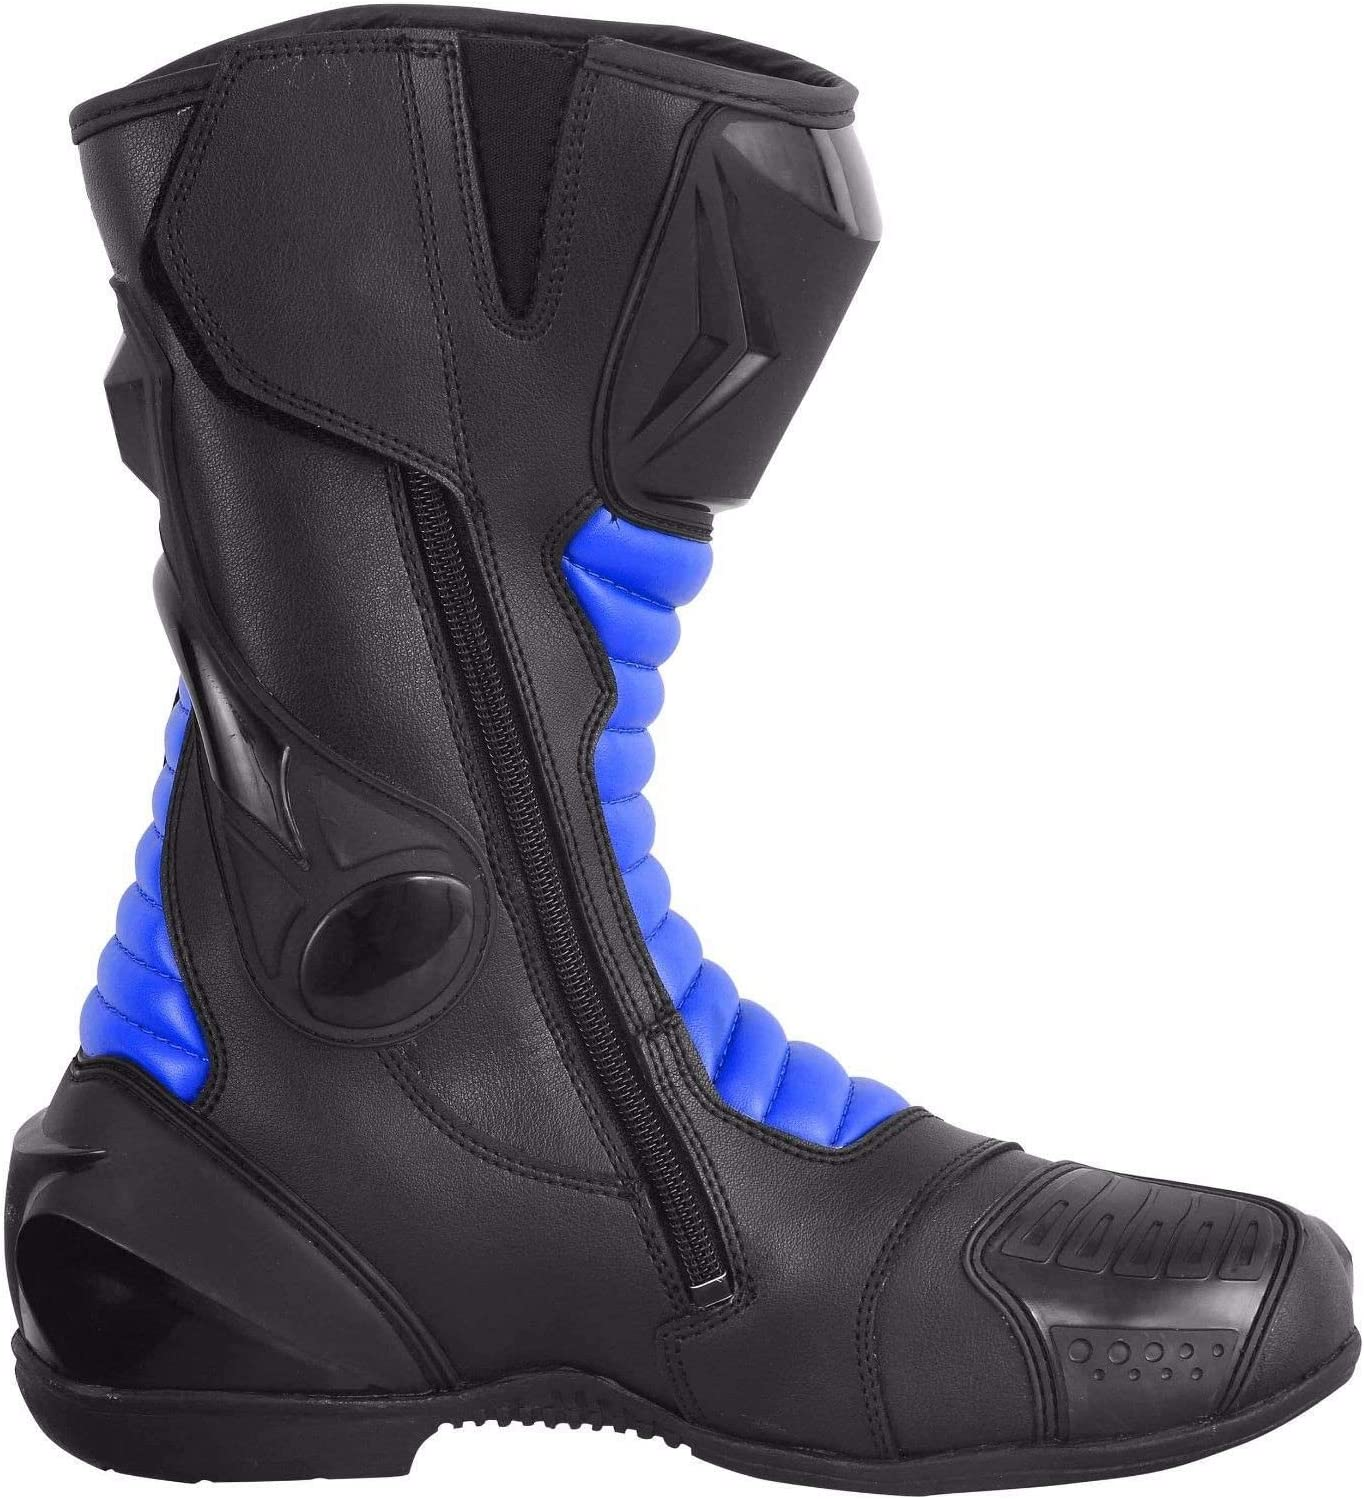 EU 44 UK 10 Blue /& Black Pro First Split Leather Waterproof Motorcycle Motorbike Armoured Boots Boot Shoes Protection Anti Slip Racing Sports